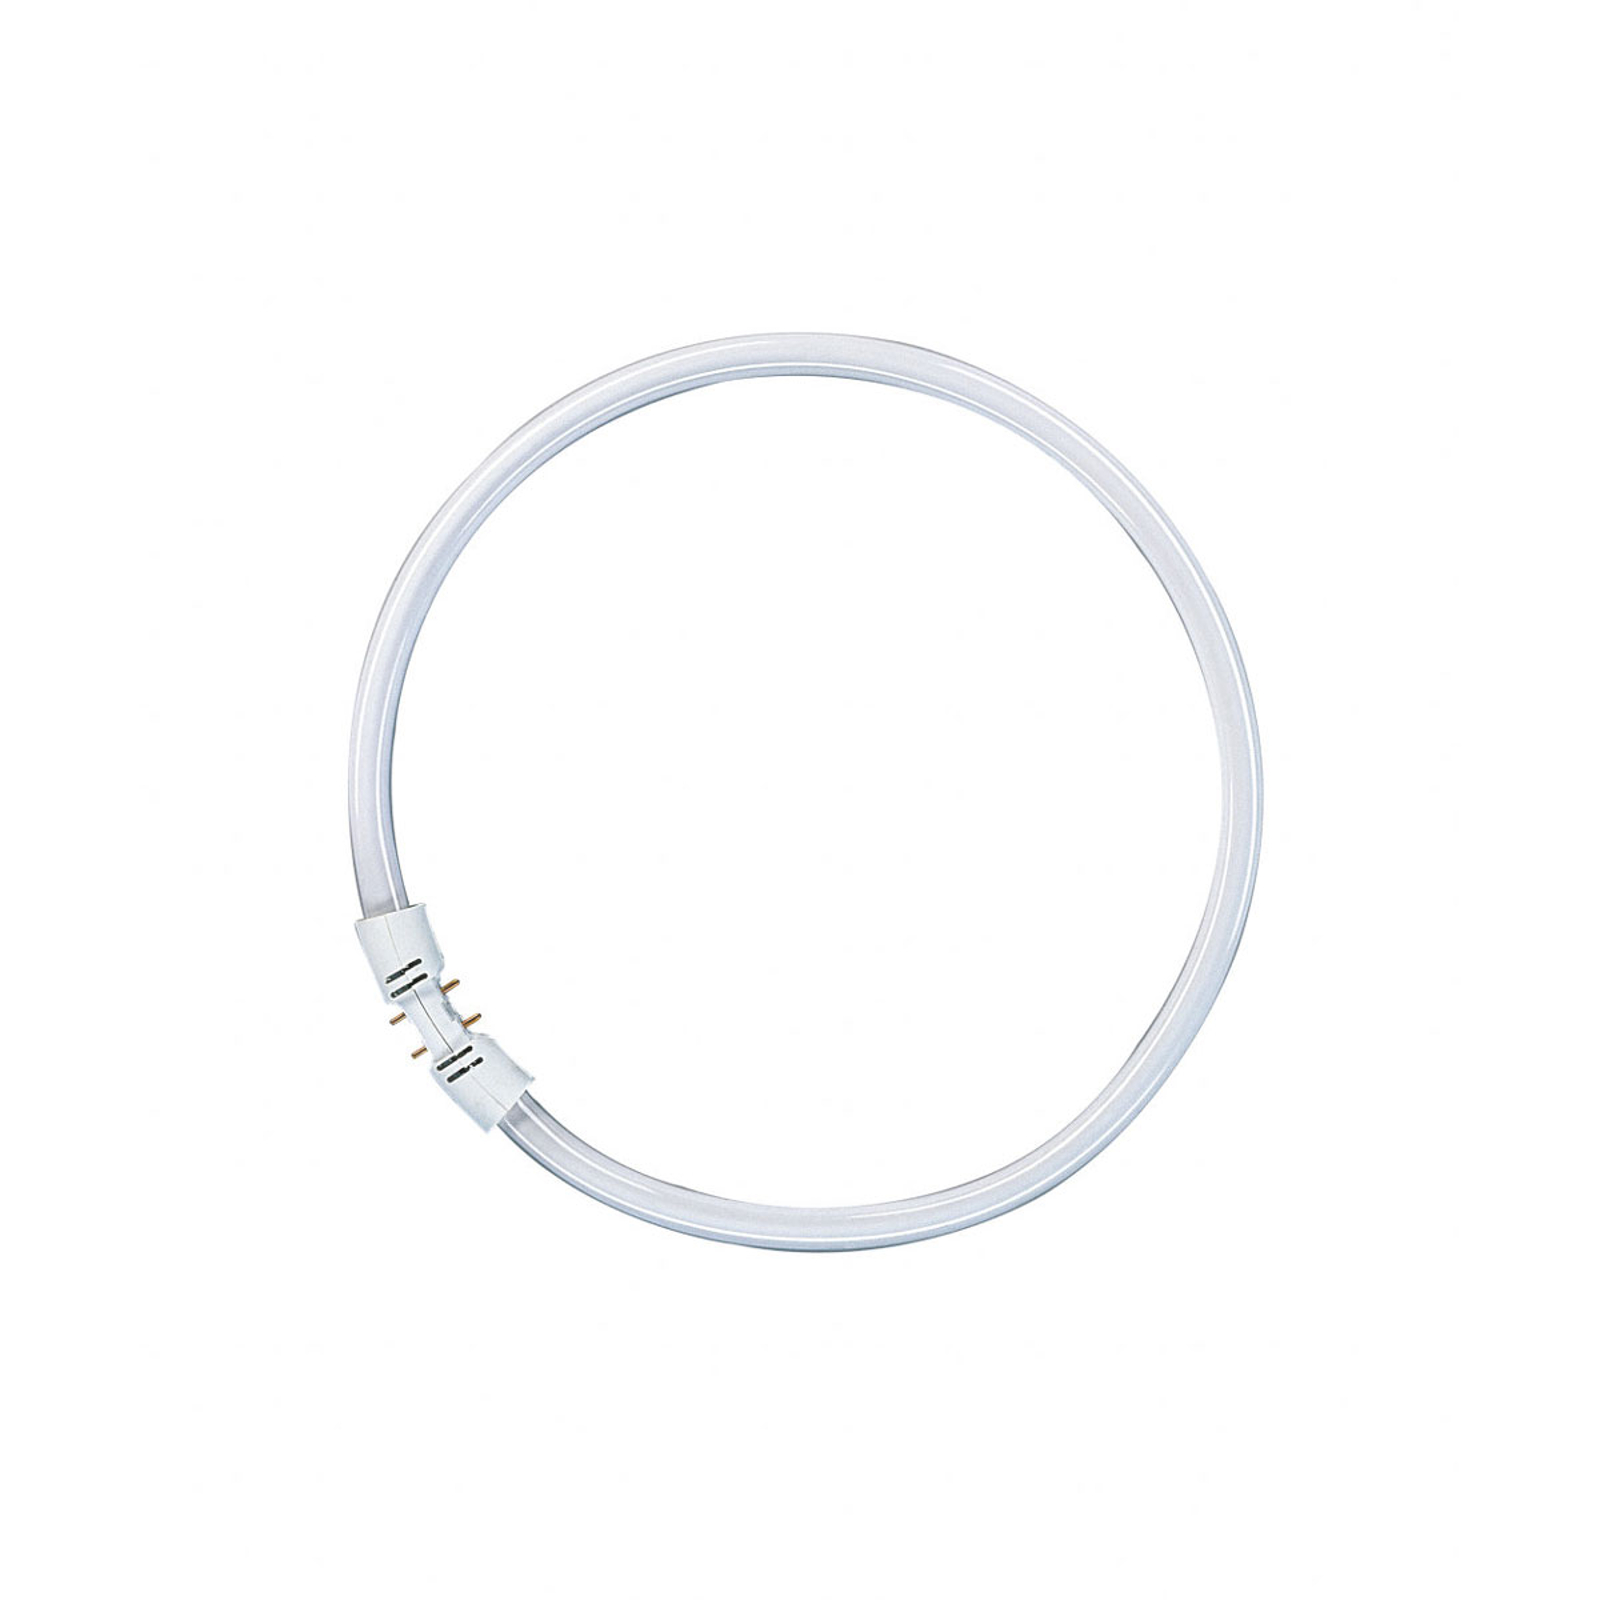 2Gx13 LUMILUX T5 Ring-Leuchtstofflampe 55W 830